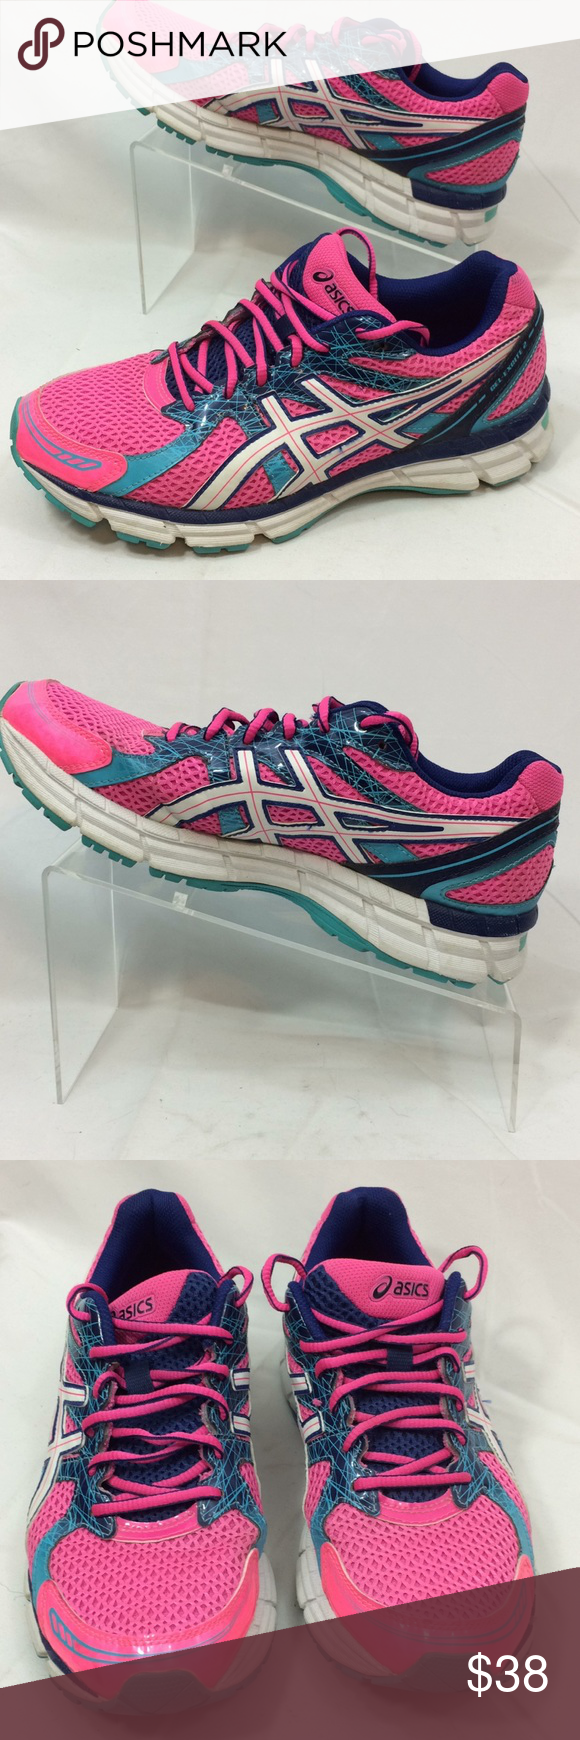 Asics Gel Excite Running Shoes Size 9   Running shoes, Shoes ...